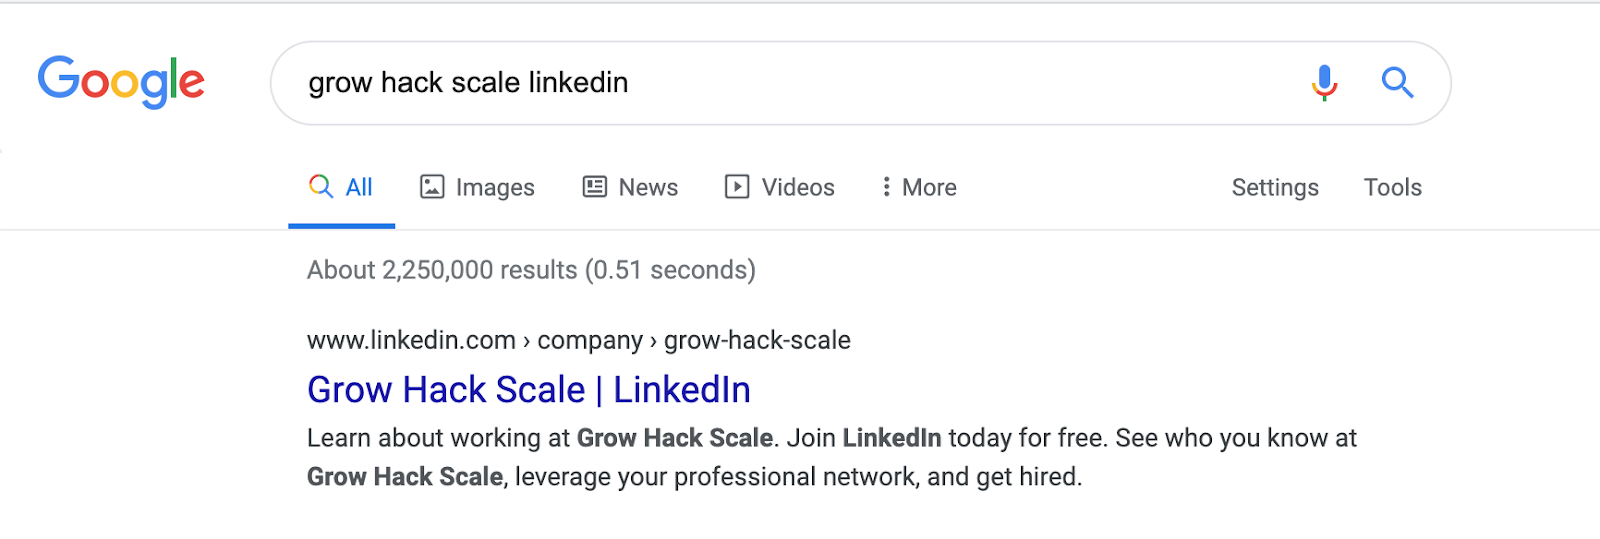 screenshot google search grow hack scale linkedin - search queries